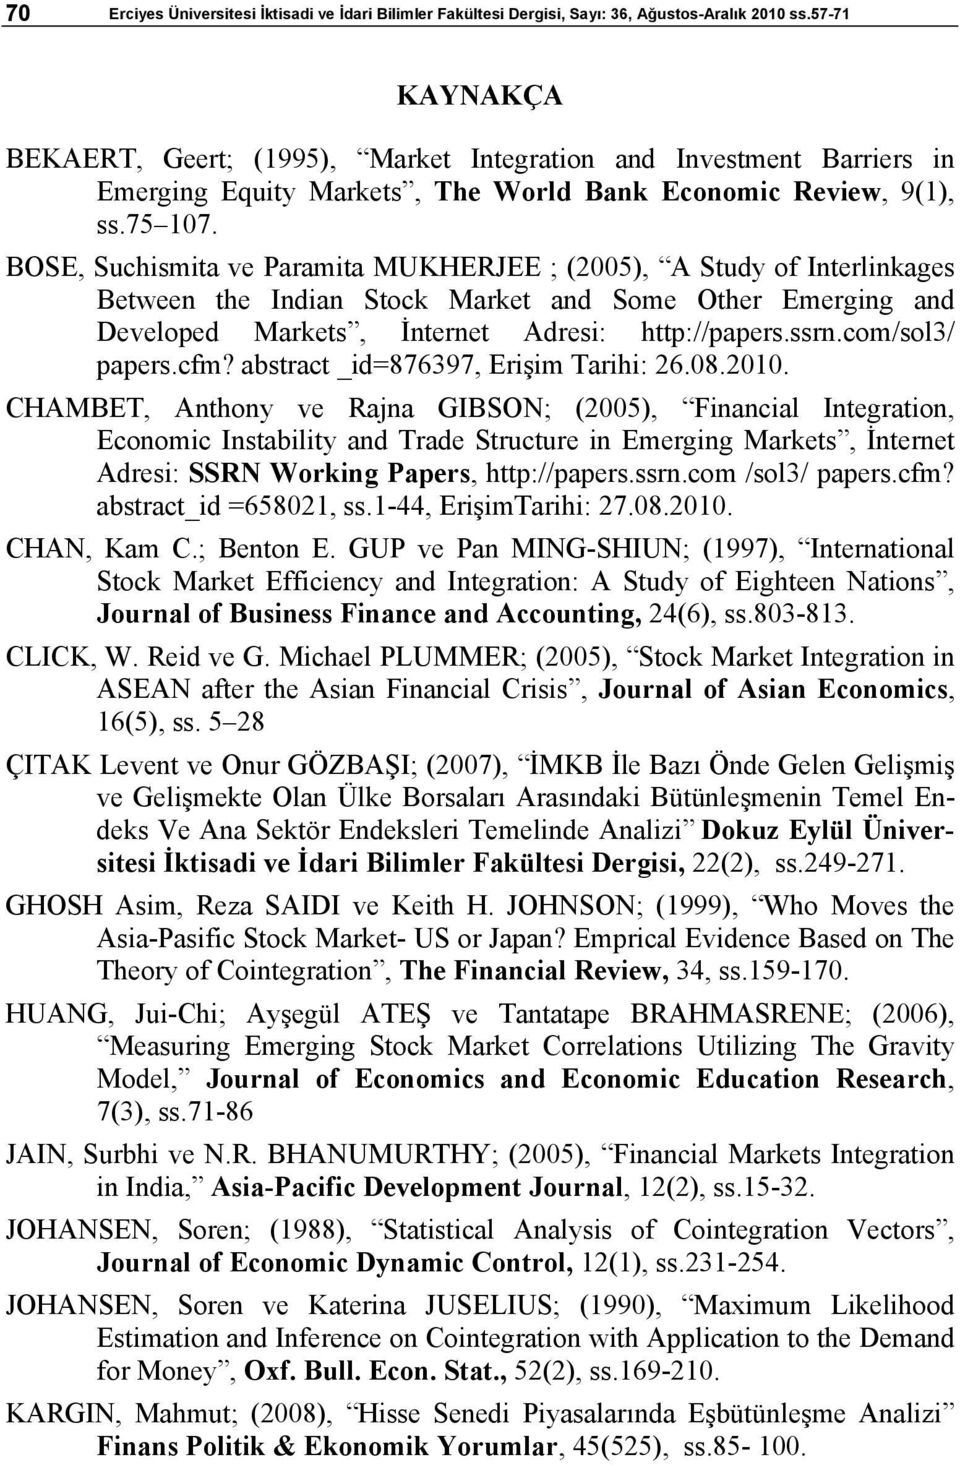 BOSE, Suchismita ve Paramita MUKHERJEE ; (2005), A Study of Interlinkages Between the Indian Stock Market and Some Other Emerging and Developed Markets, İnternet Adresi: http://papers.ssrn.